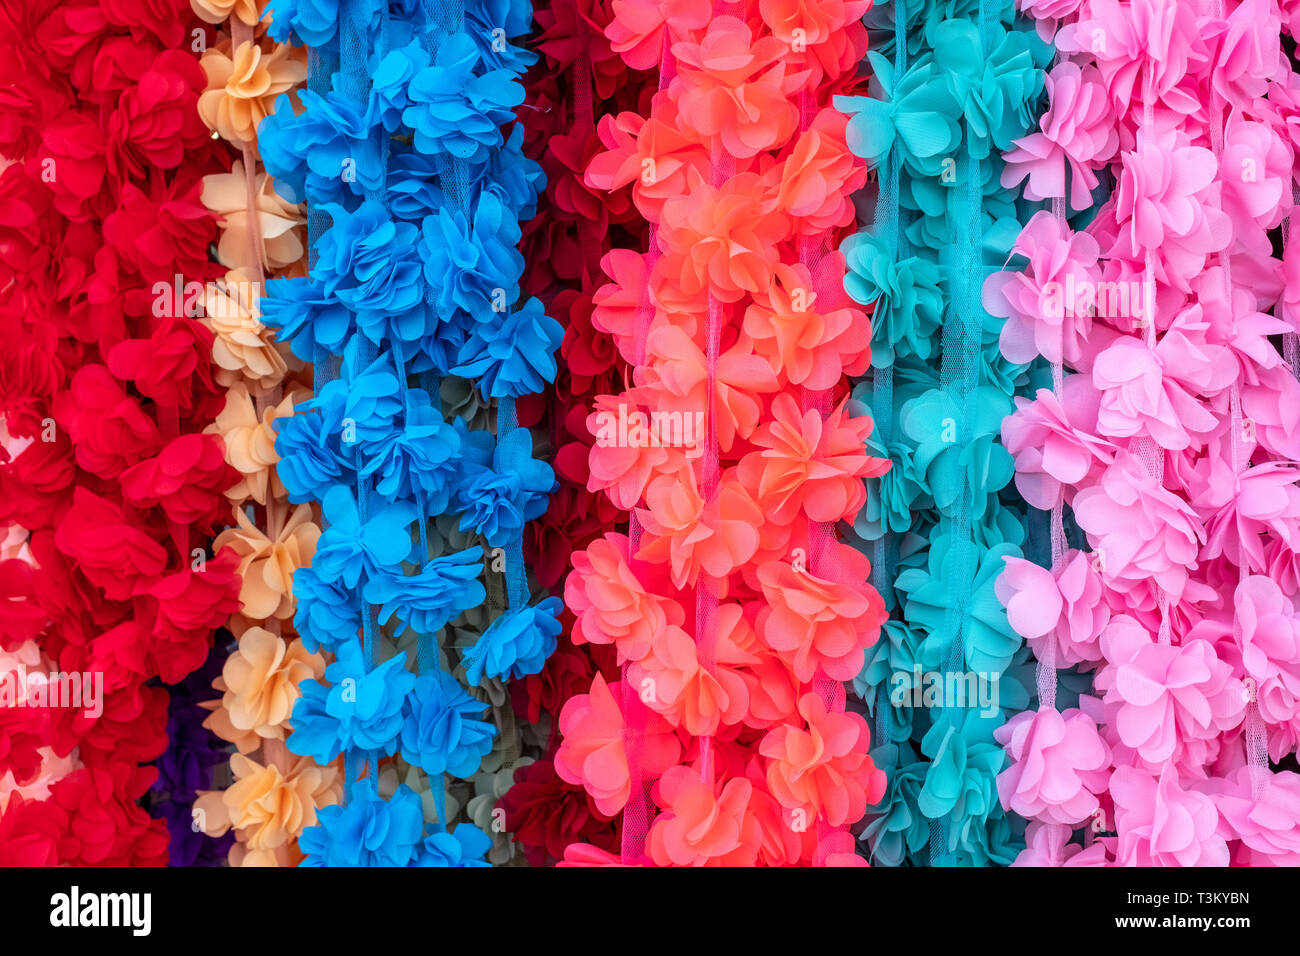 JERUSALEM, ISRAEL - APRIL 8, 2019: A row of vividly colourful artificial flowers hangs outide a shop on Jaffa Road. - Stock Image